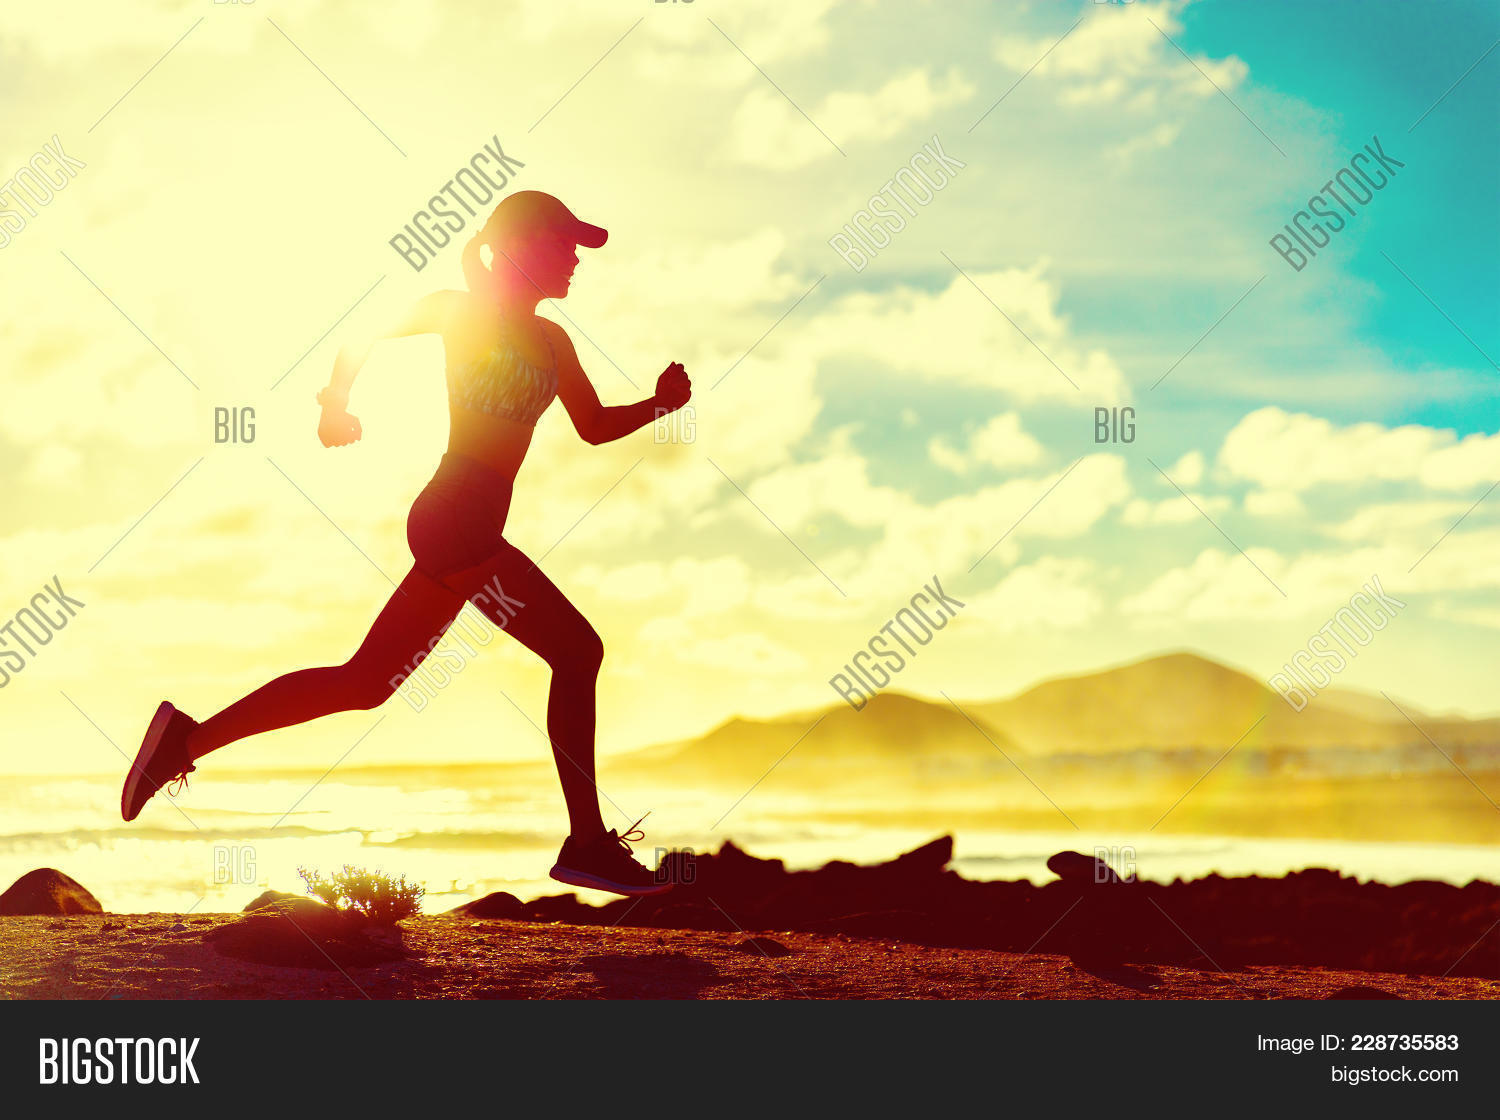 afternoon,background,beach,body,cap,cardio,energy,exercise,fit,fitness,flare,girl,happy,healthy,landscape,legs,life,lifestyle,living,loss,marathon,motivation,nature,outdoor,people,person,run,runner,running,shape,shoes,silhouette,sky,sport,sporty,sprint,sprinting,strong,summer,sun,sunlight,sunset,sunshine,trail,vitality,warm,weight,woman,women,young